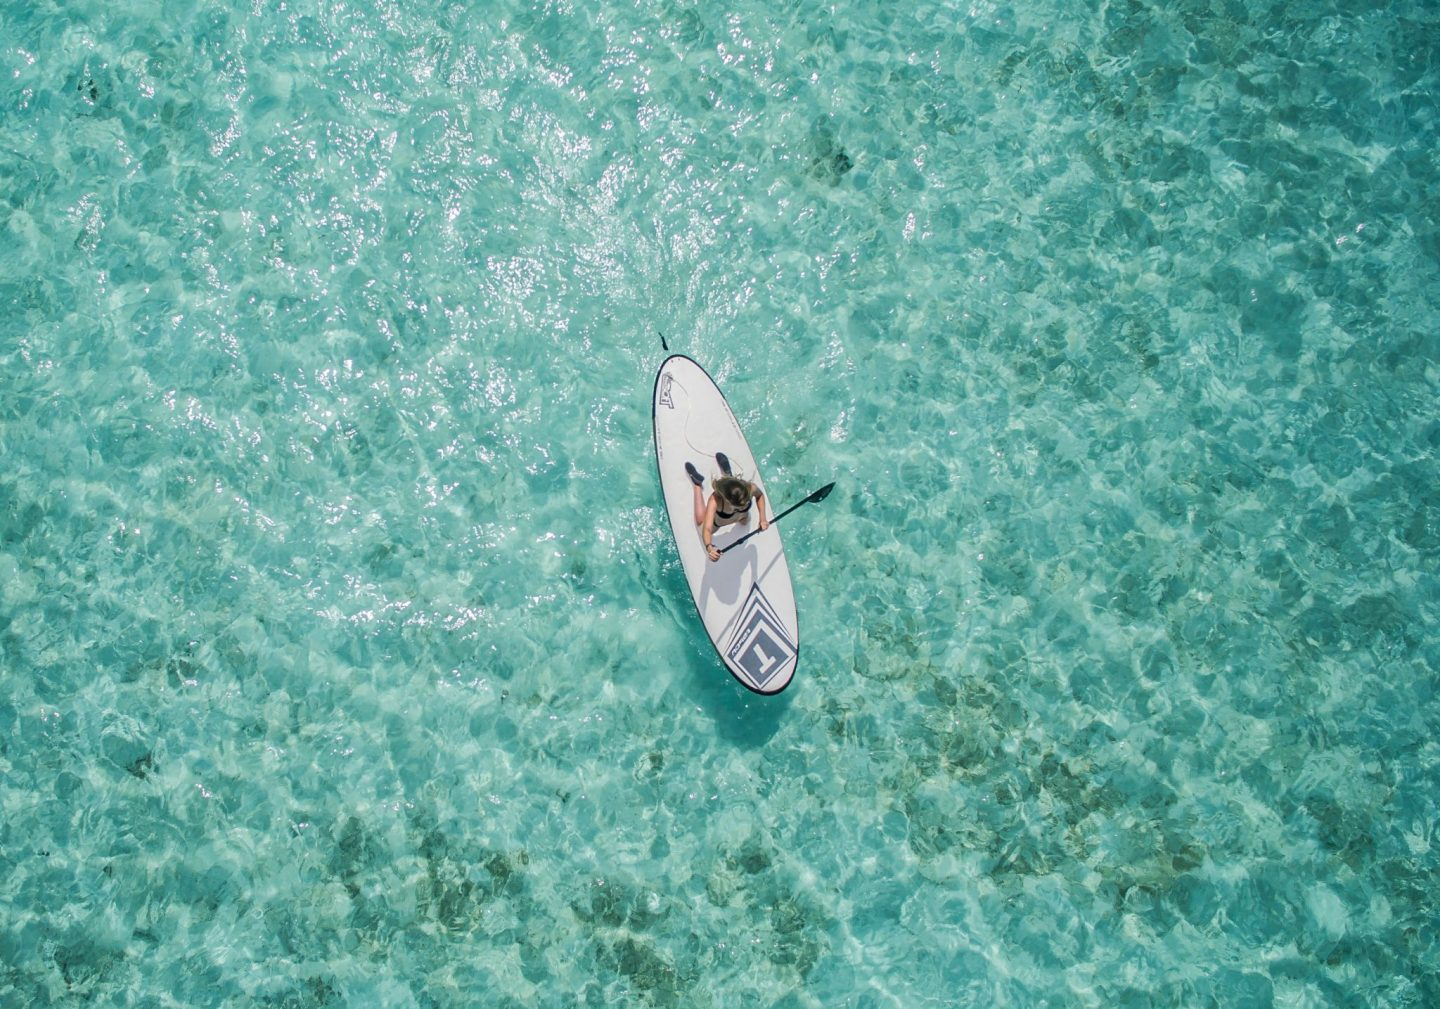 surfboard, ocean, inspire, inspiration, travel, traveling, wanderlust, travel blogger